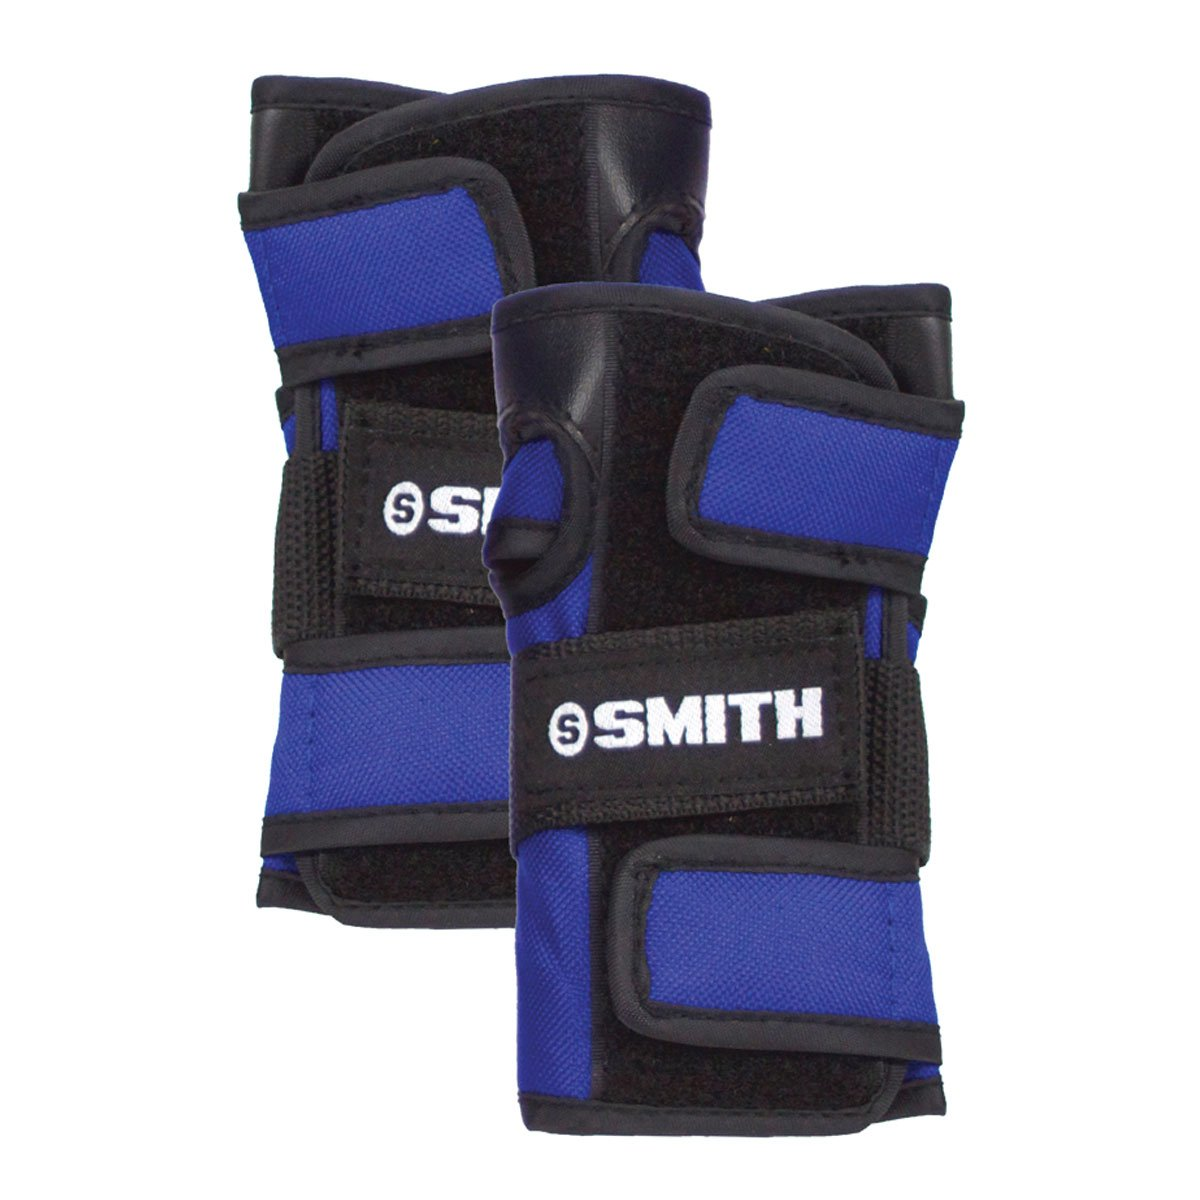 Smith Safety Gear Scabs Wrist Guards, Blue, Large by Smith Safety Gear